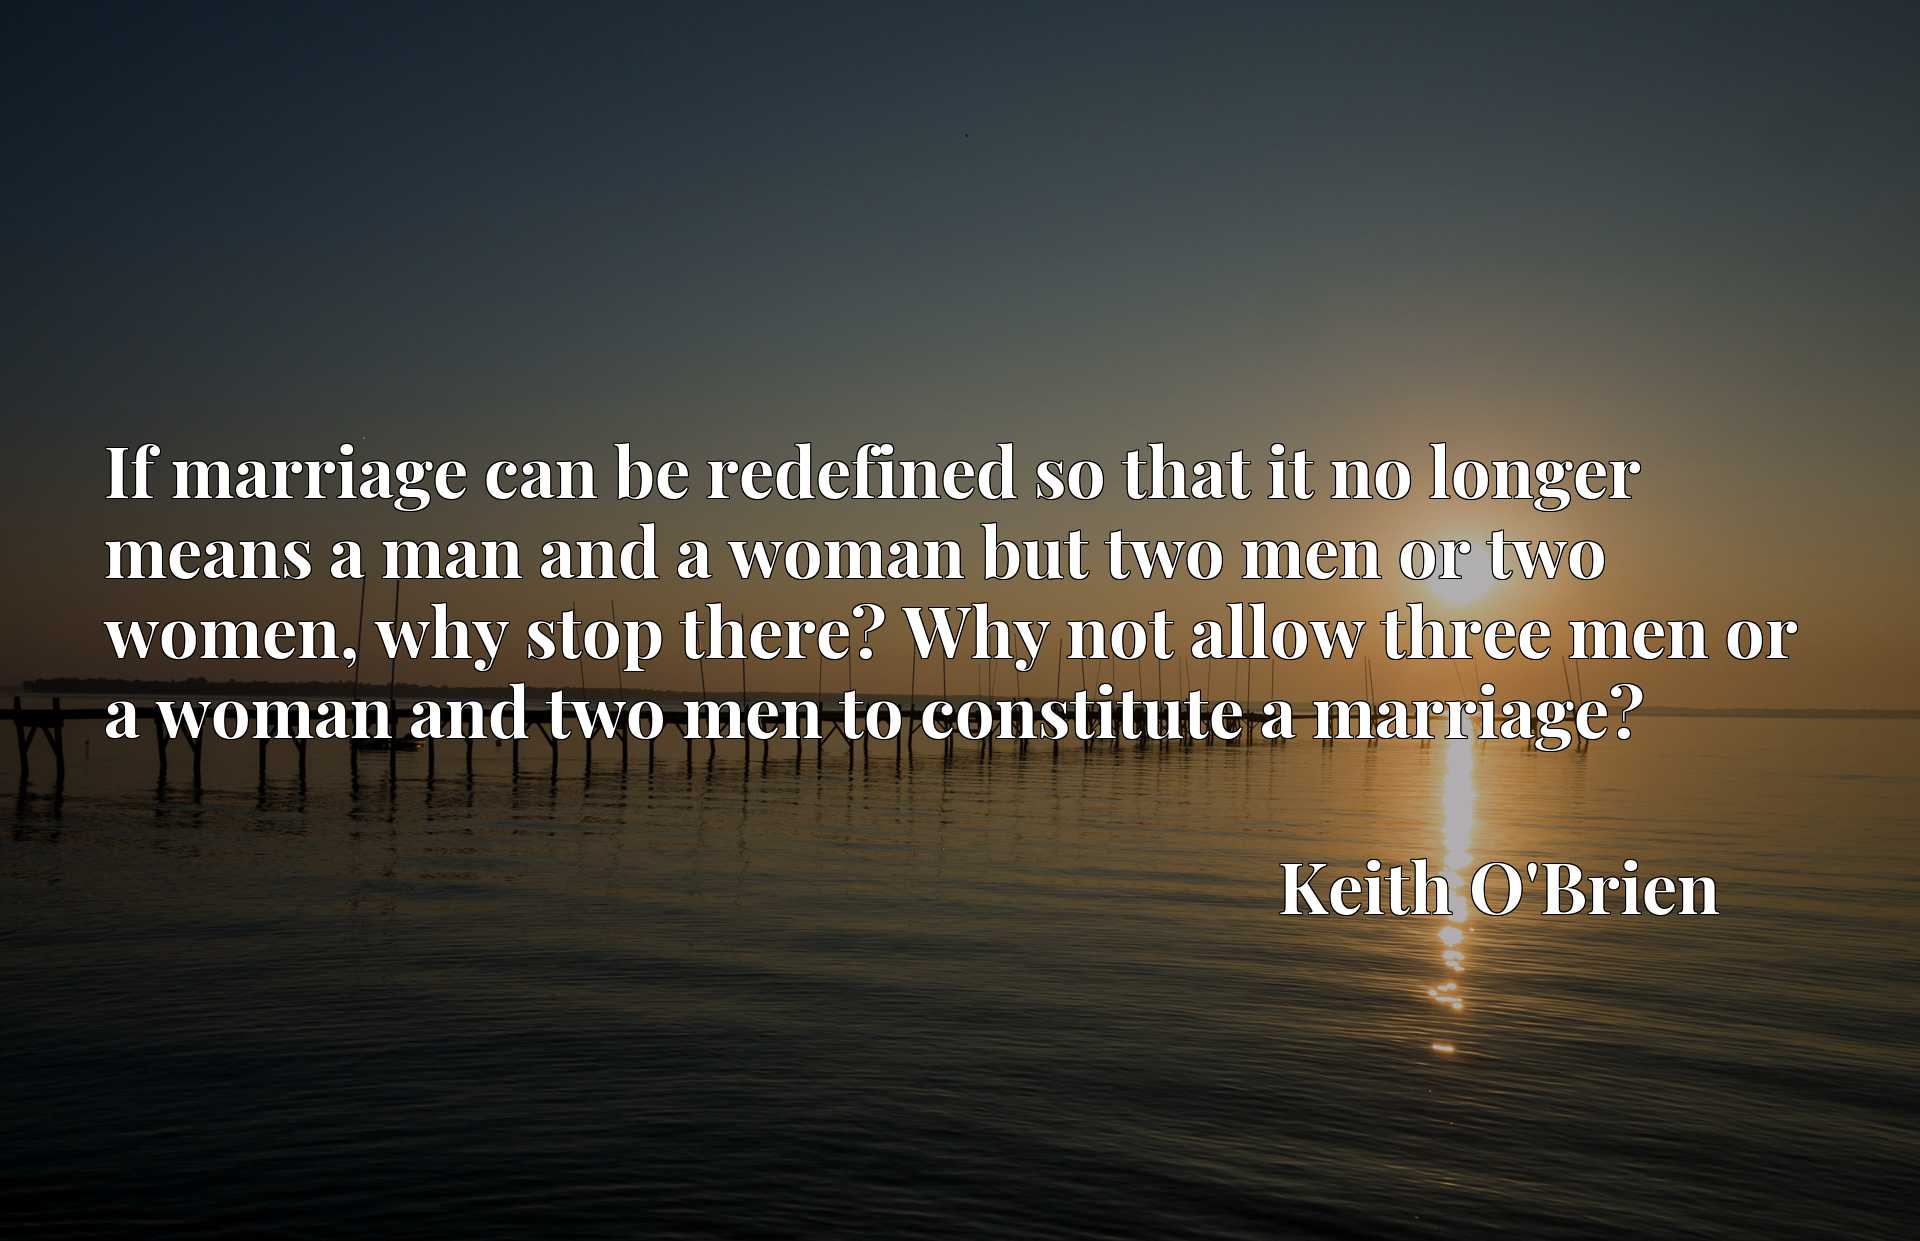 If marriage can be redefined so that it no longer means a man and a woman but two men or two women, why stop there? Why not allow three men or a woman and two men to constitute a marriage?